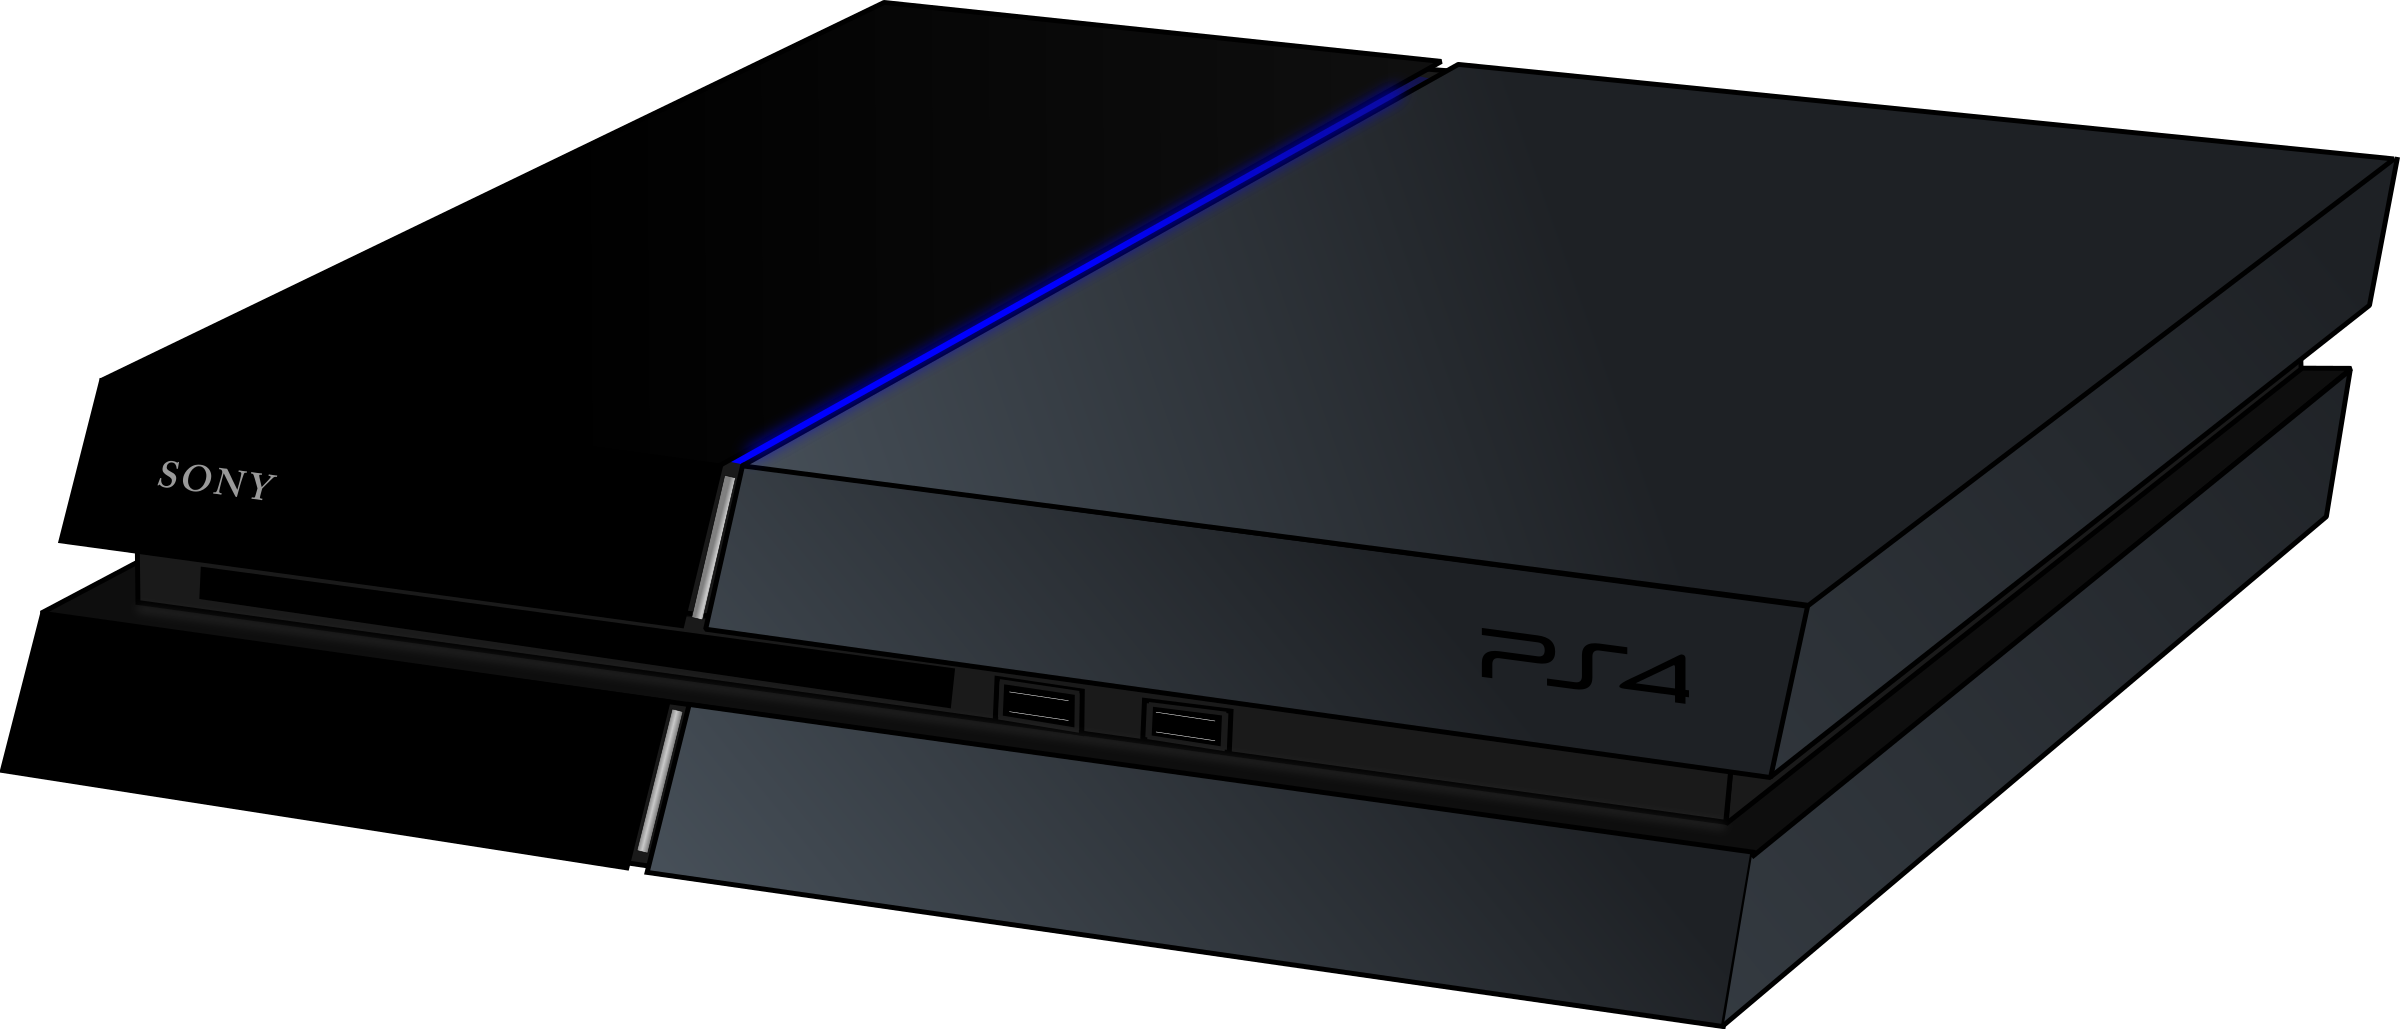 PS4 by scro2003